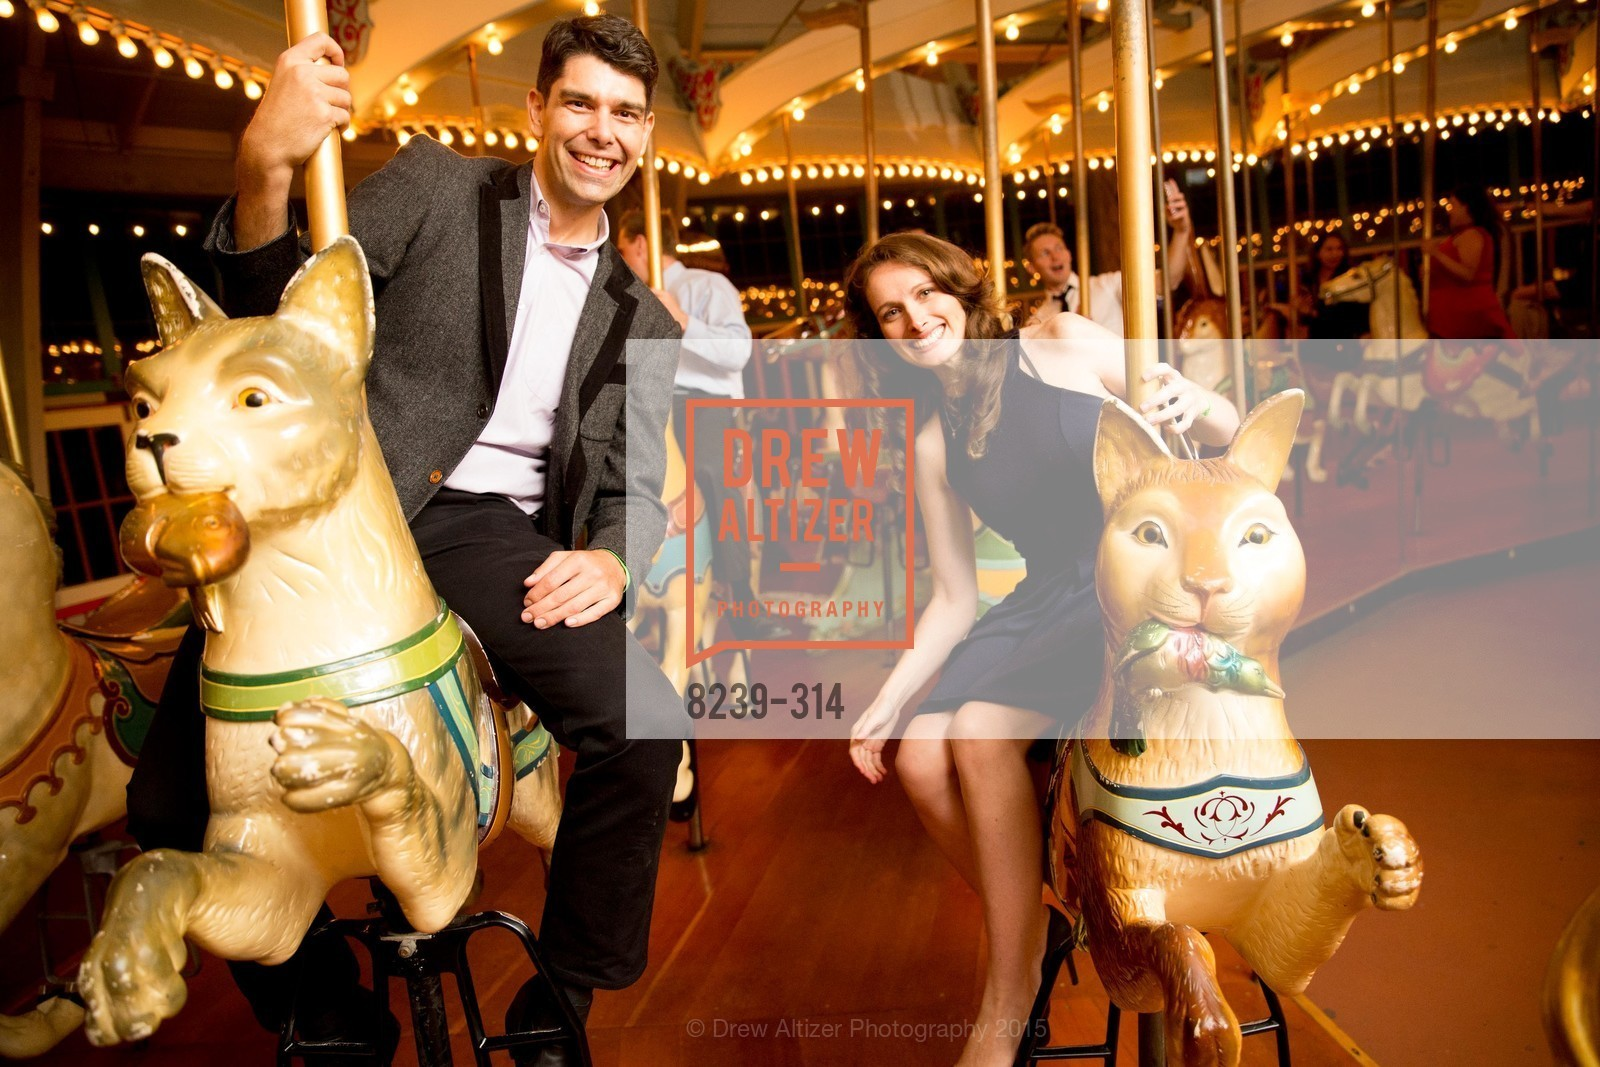 Jeremy Nusser, Amanda Dunker, San Francisco Zoo Fur Ball, San Francisco Zoo, September 25th, 2015,Drew Altizer, Drew Altizer Photography, full-service agency, private events, San Francisco photographer, photographer california